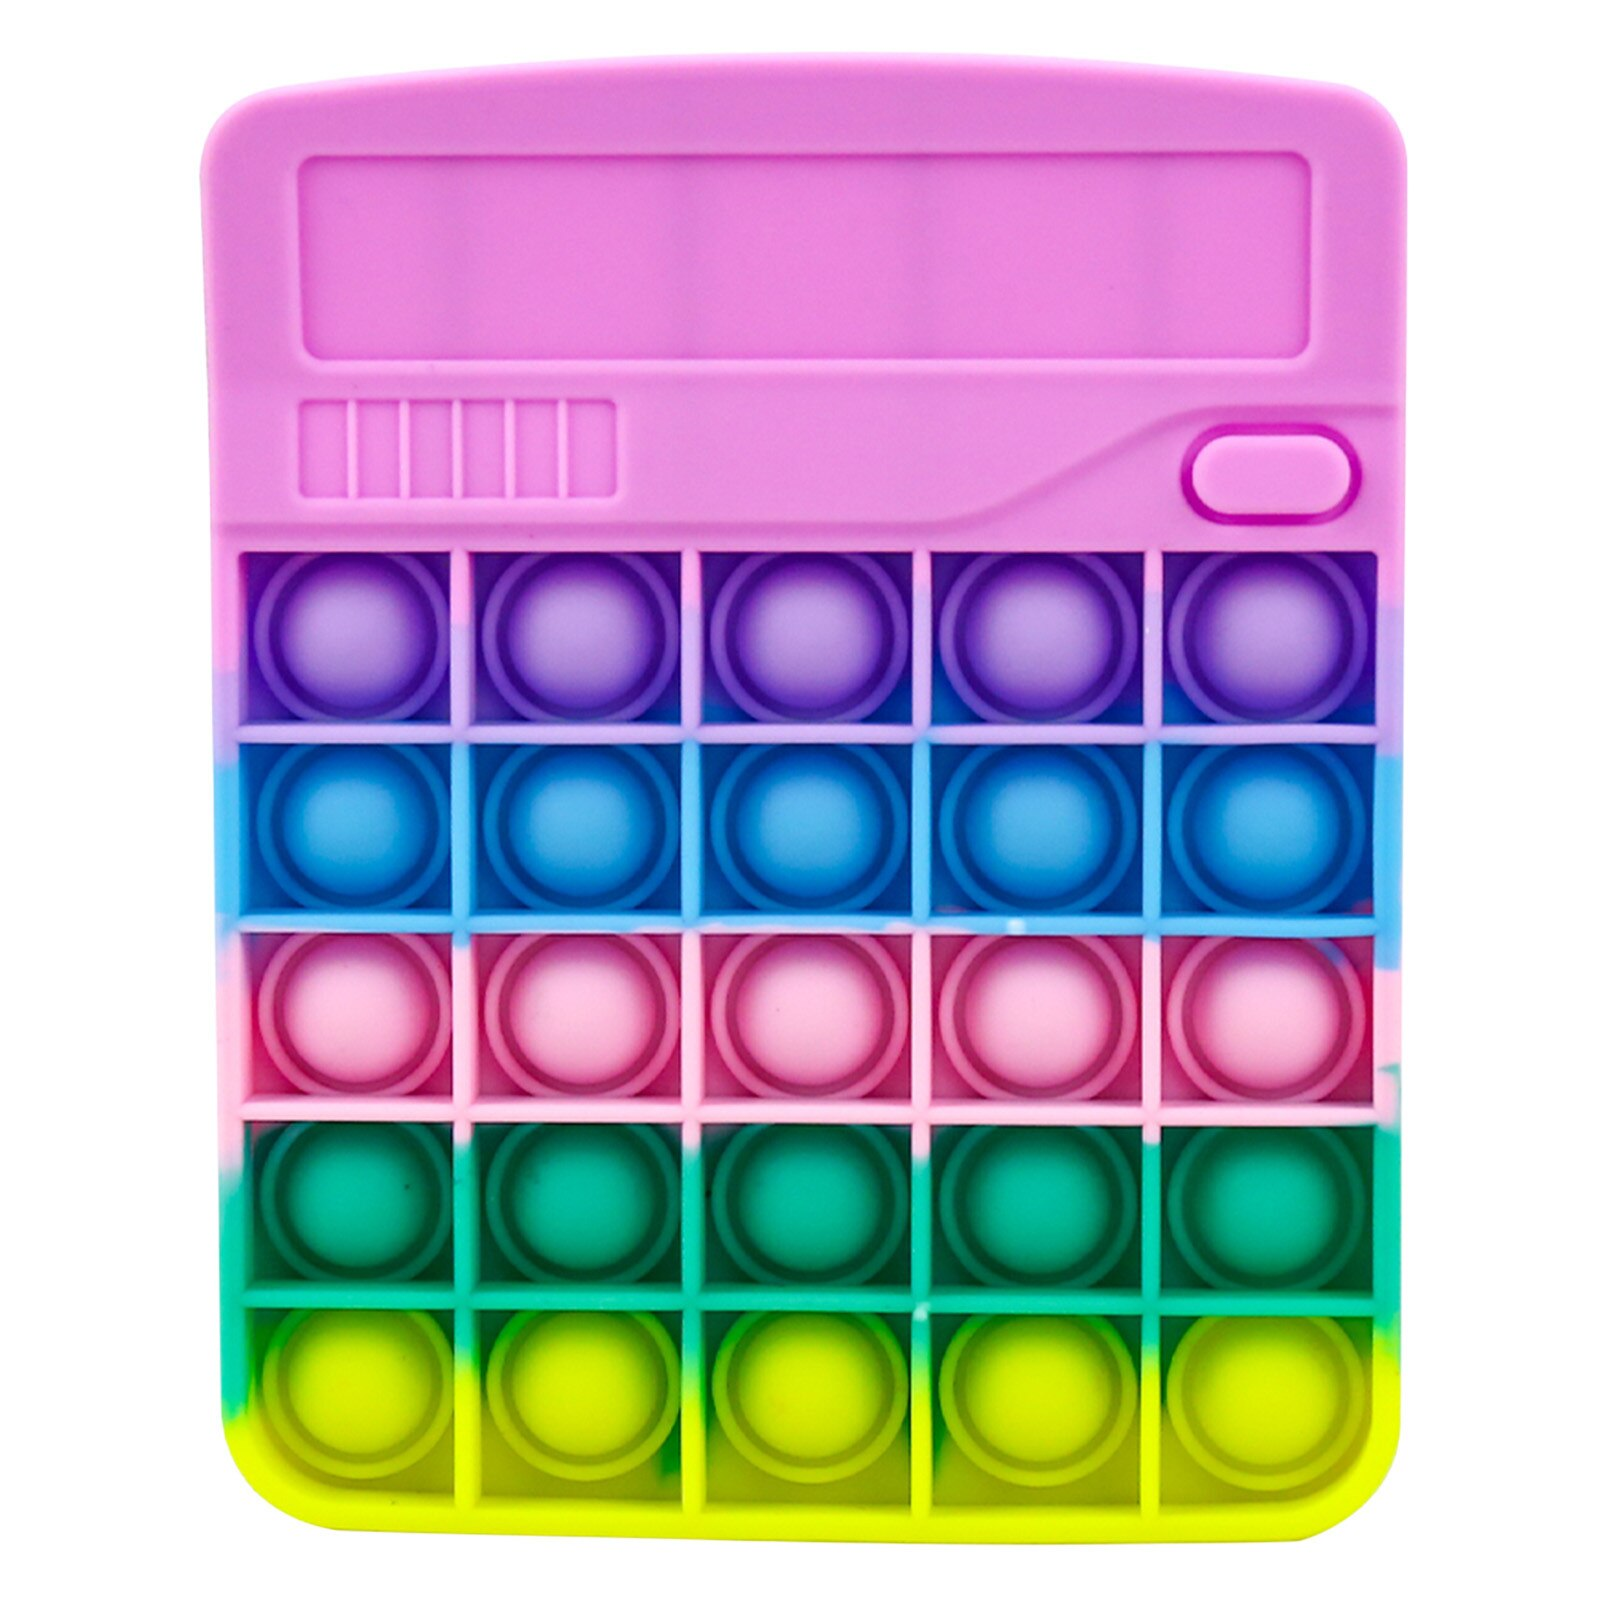 Calculator Popular Stress Relieving Fidget Toy Kids Adults Pinch Bubble Anxiety Autism Silicone Toy Simple Dimple Brinquedos